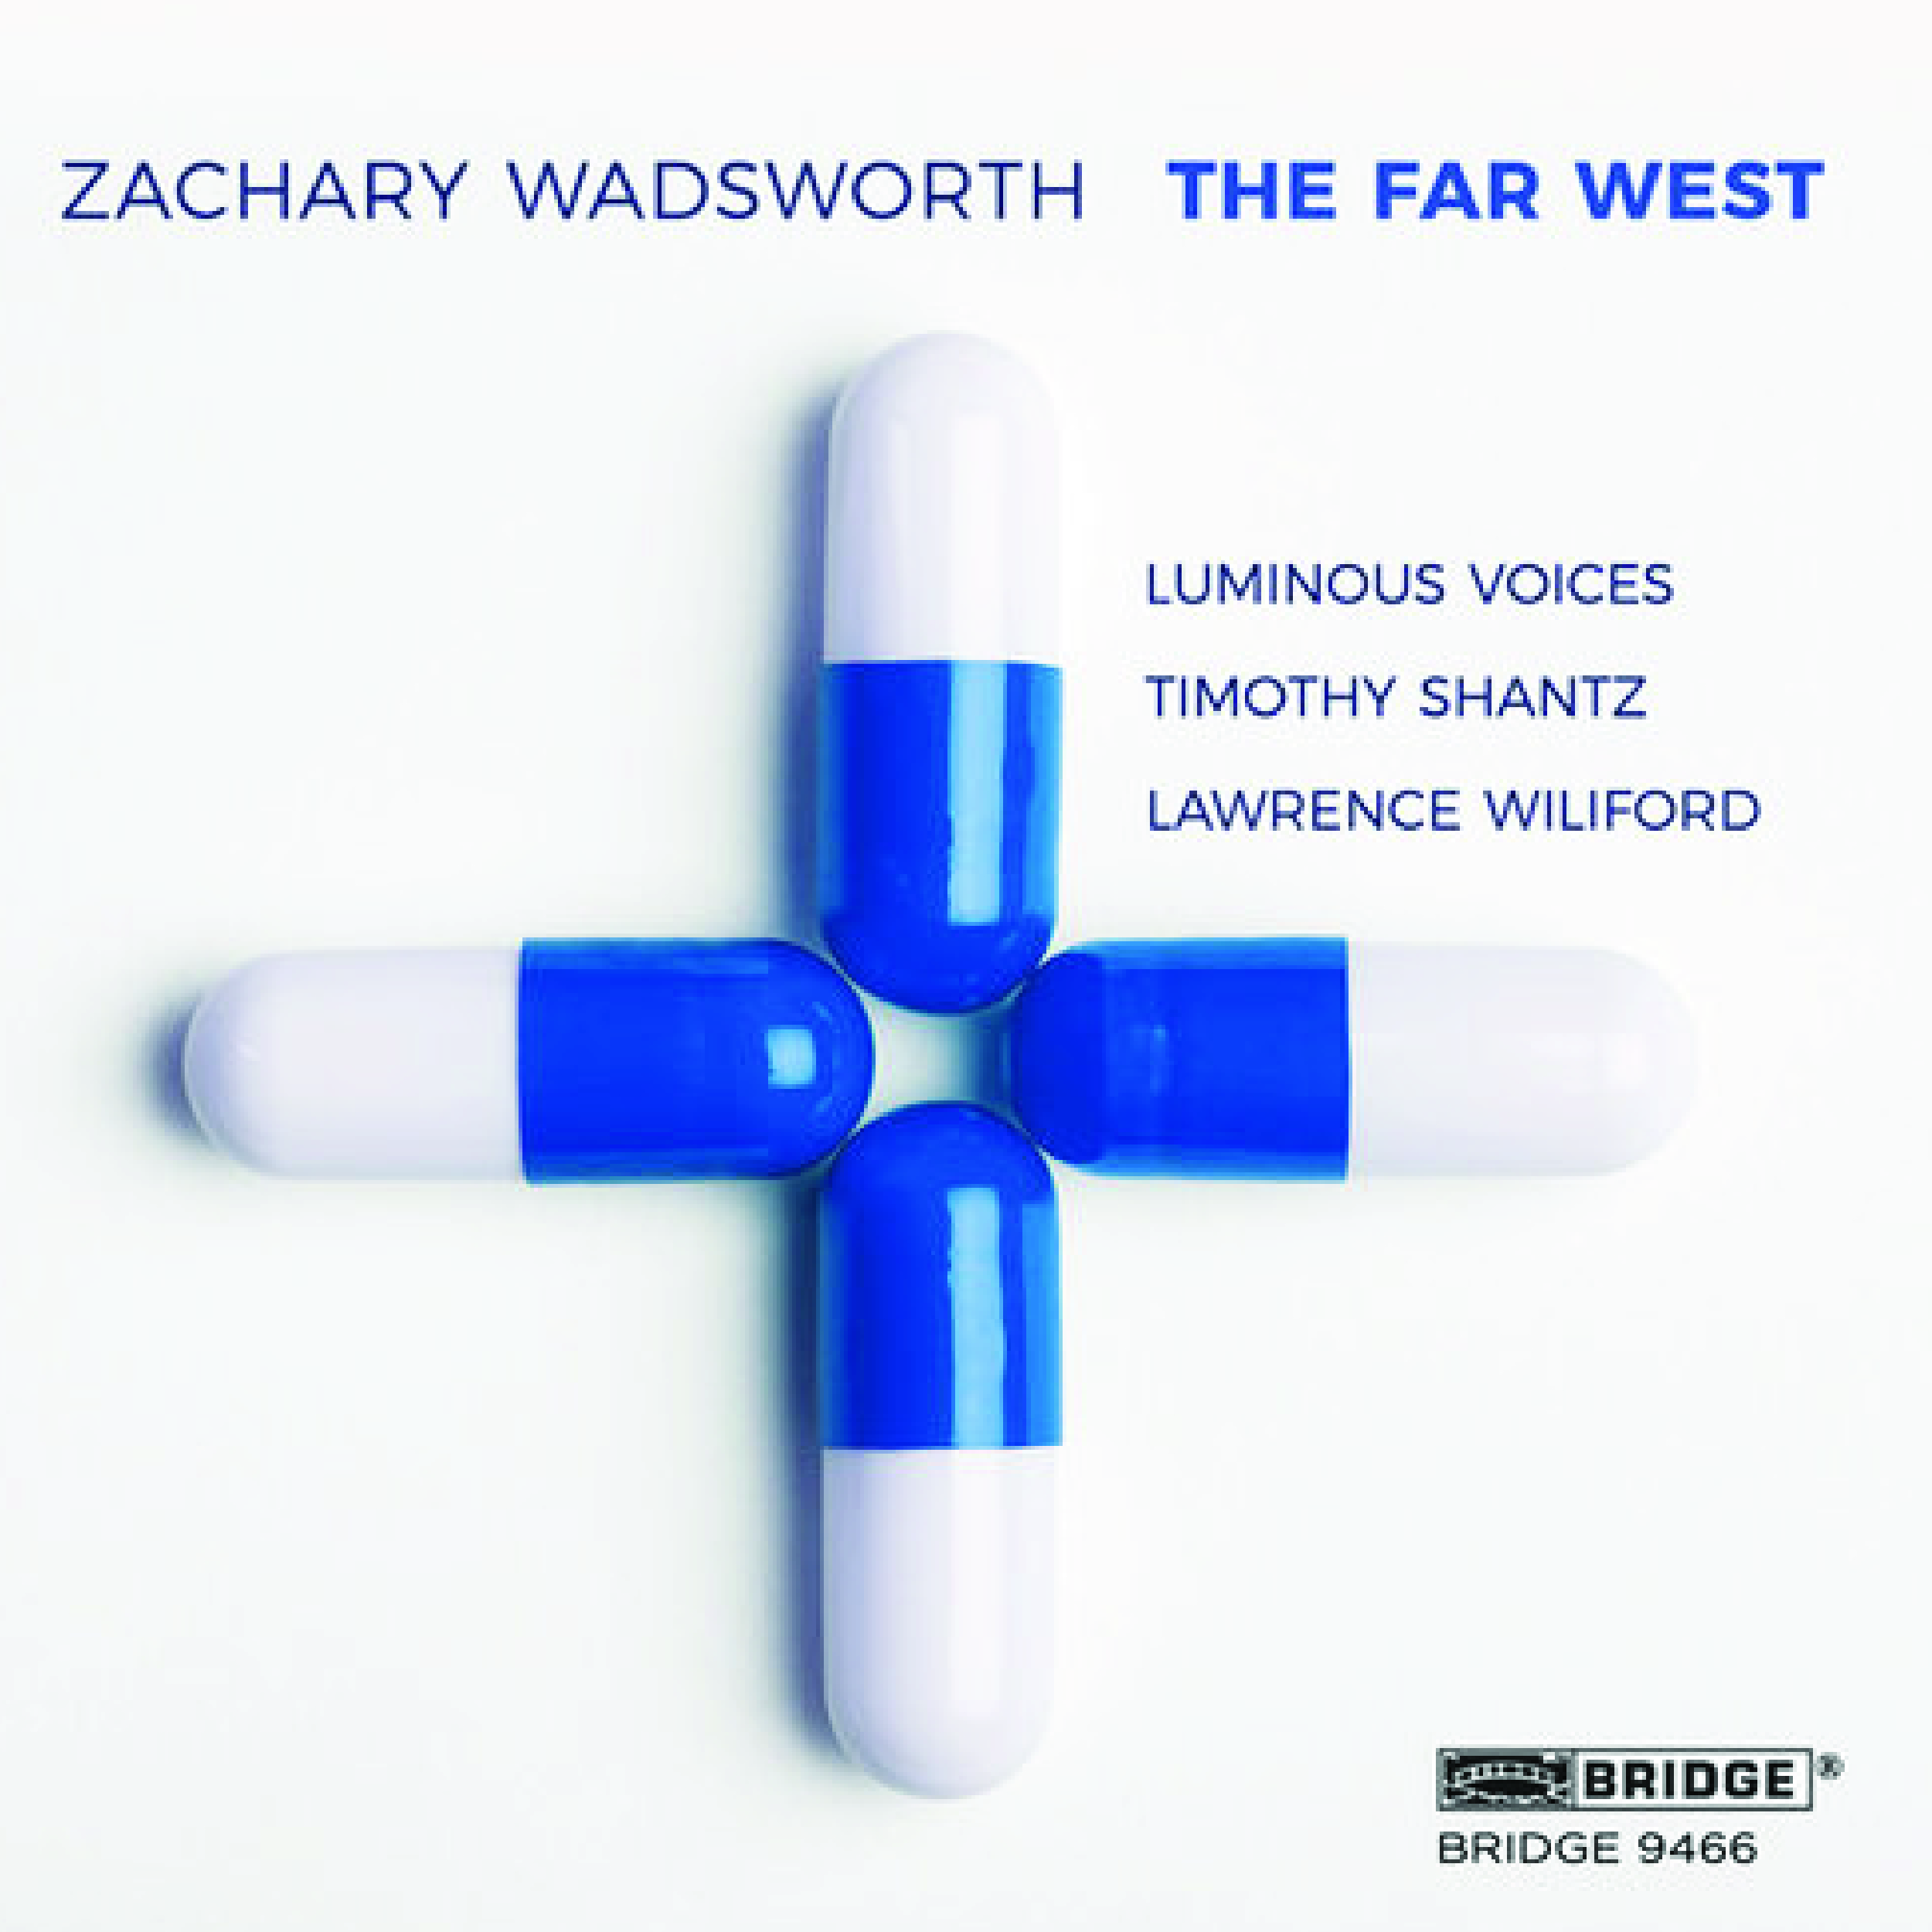 CD-WadsworthTheFarWest-01.jpg